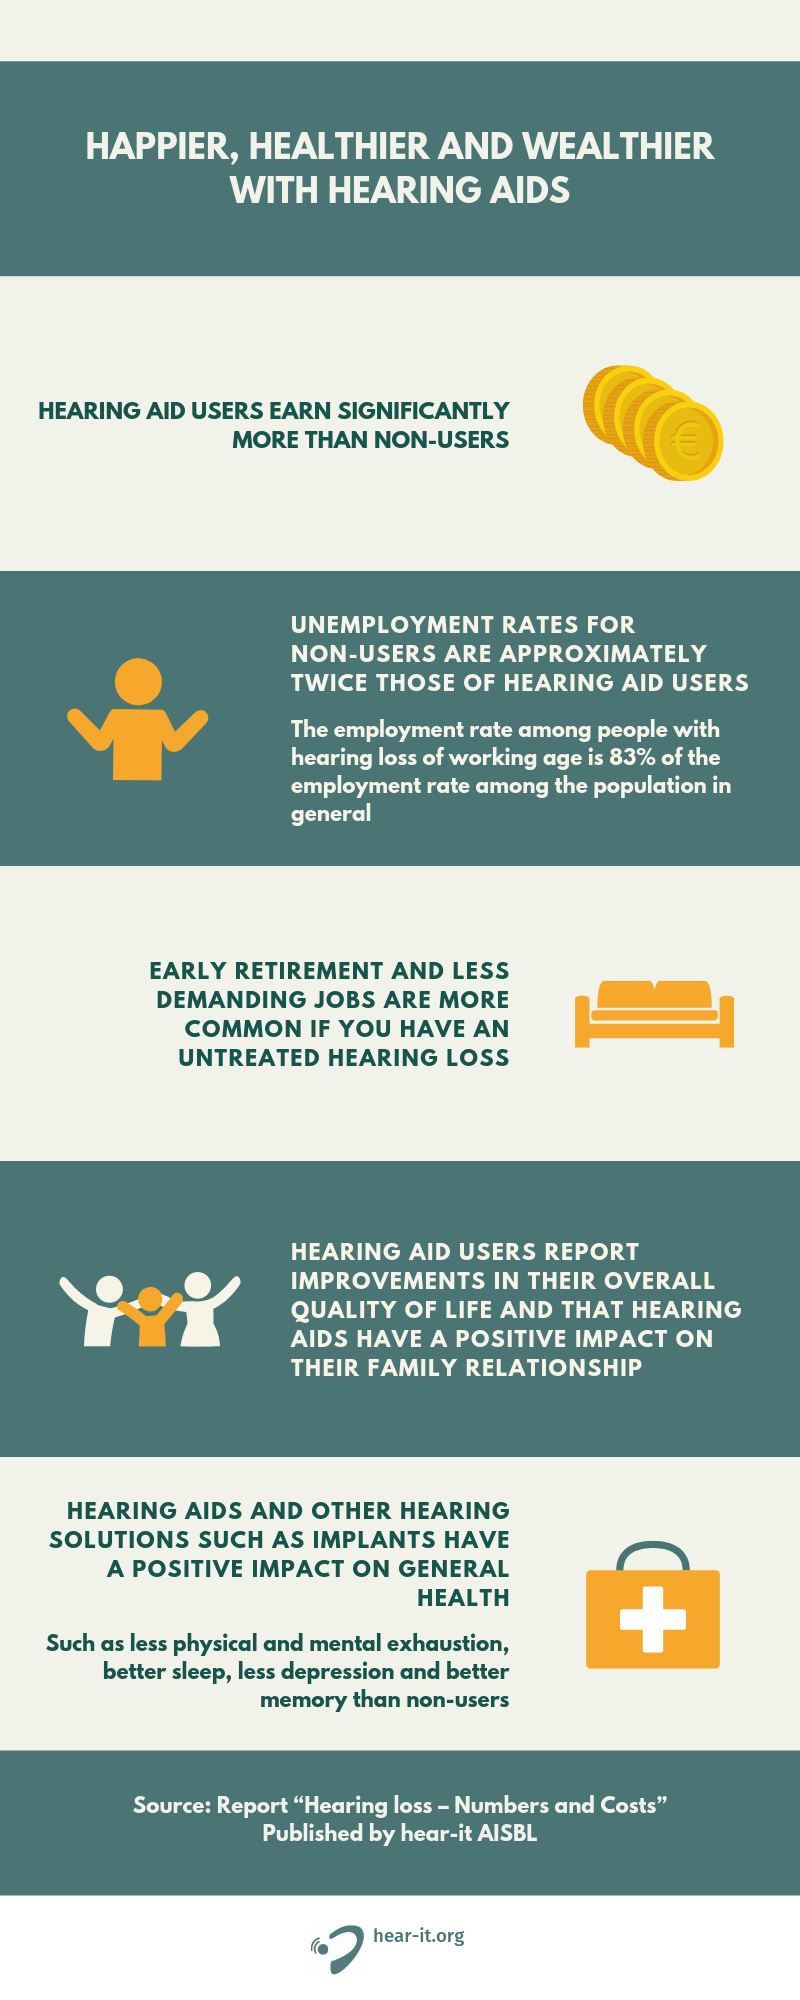 Happier, Healthier and Wealthier with Hearing Aids [Hear-It Press Release]